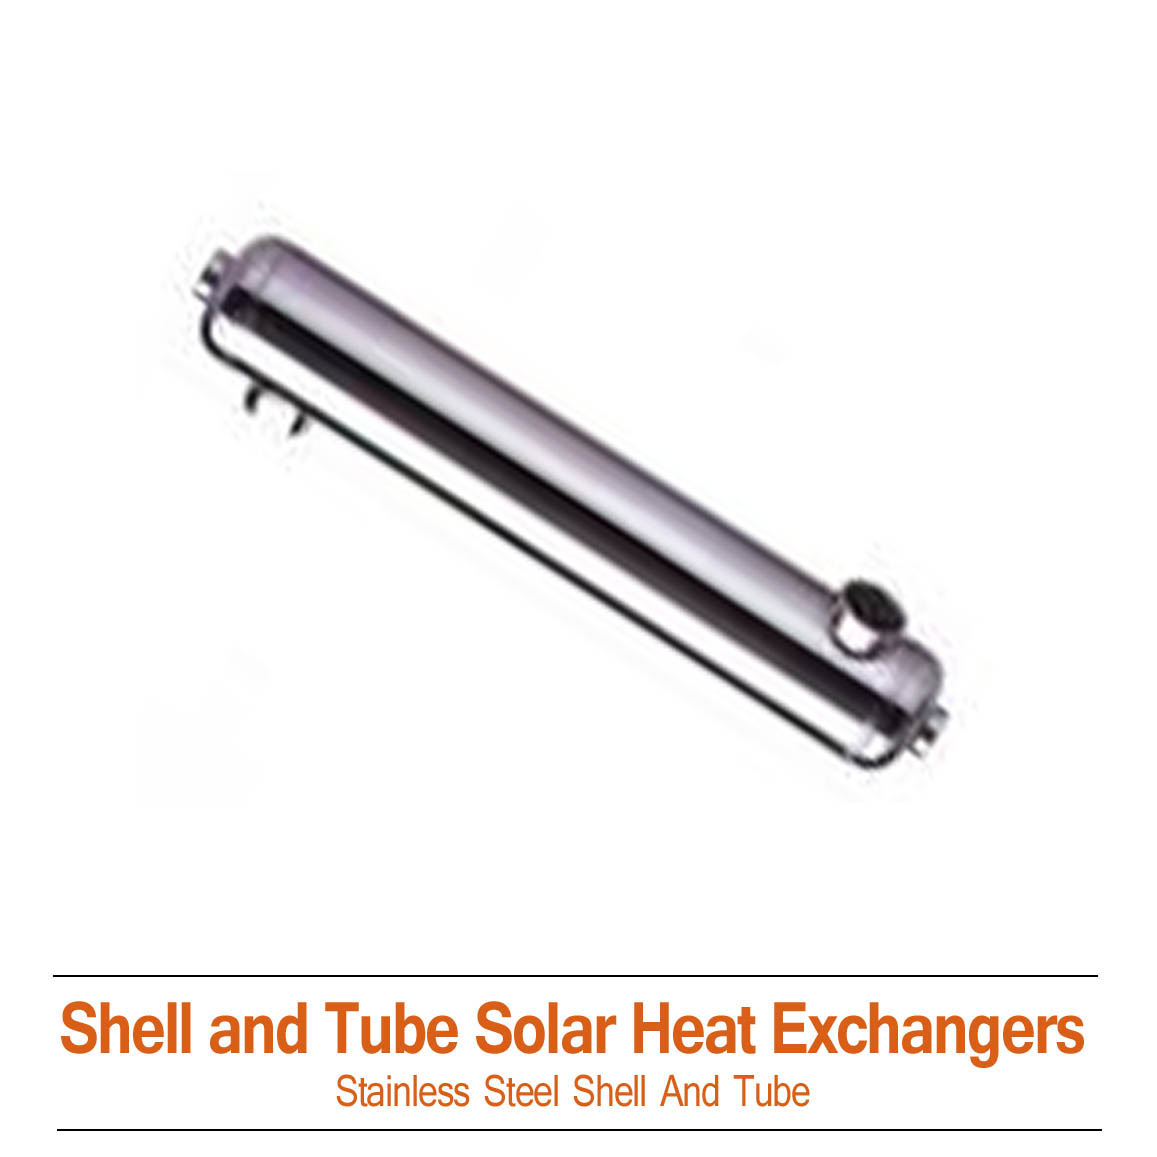 XMaxx Solar Air To Water Heat Exchangers